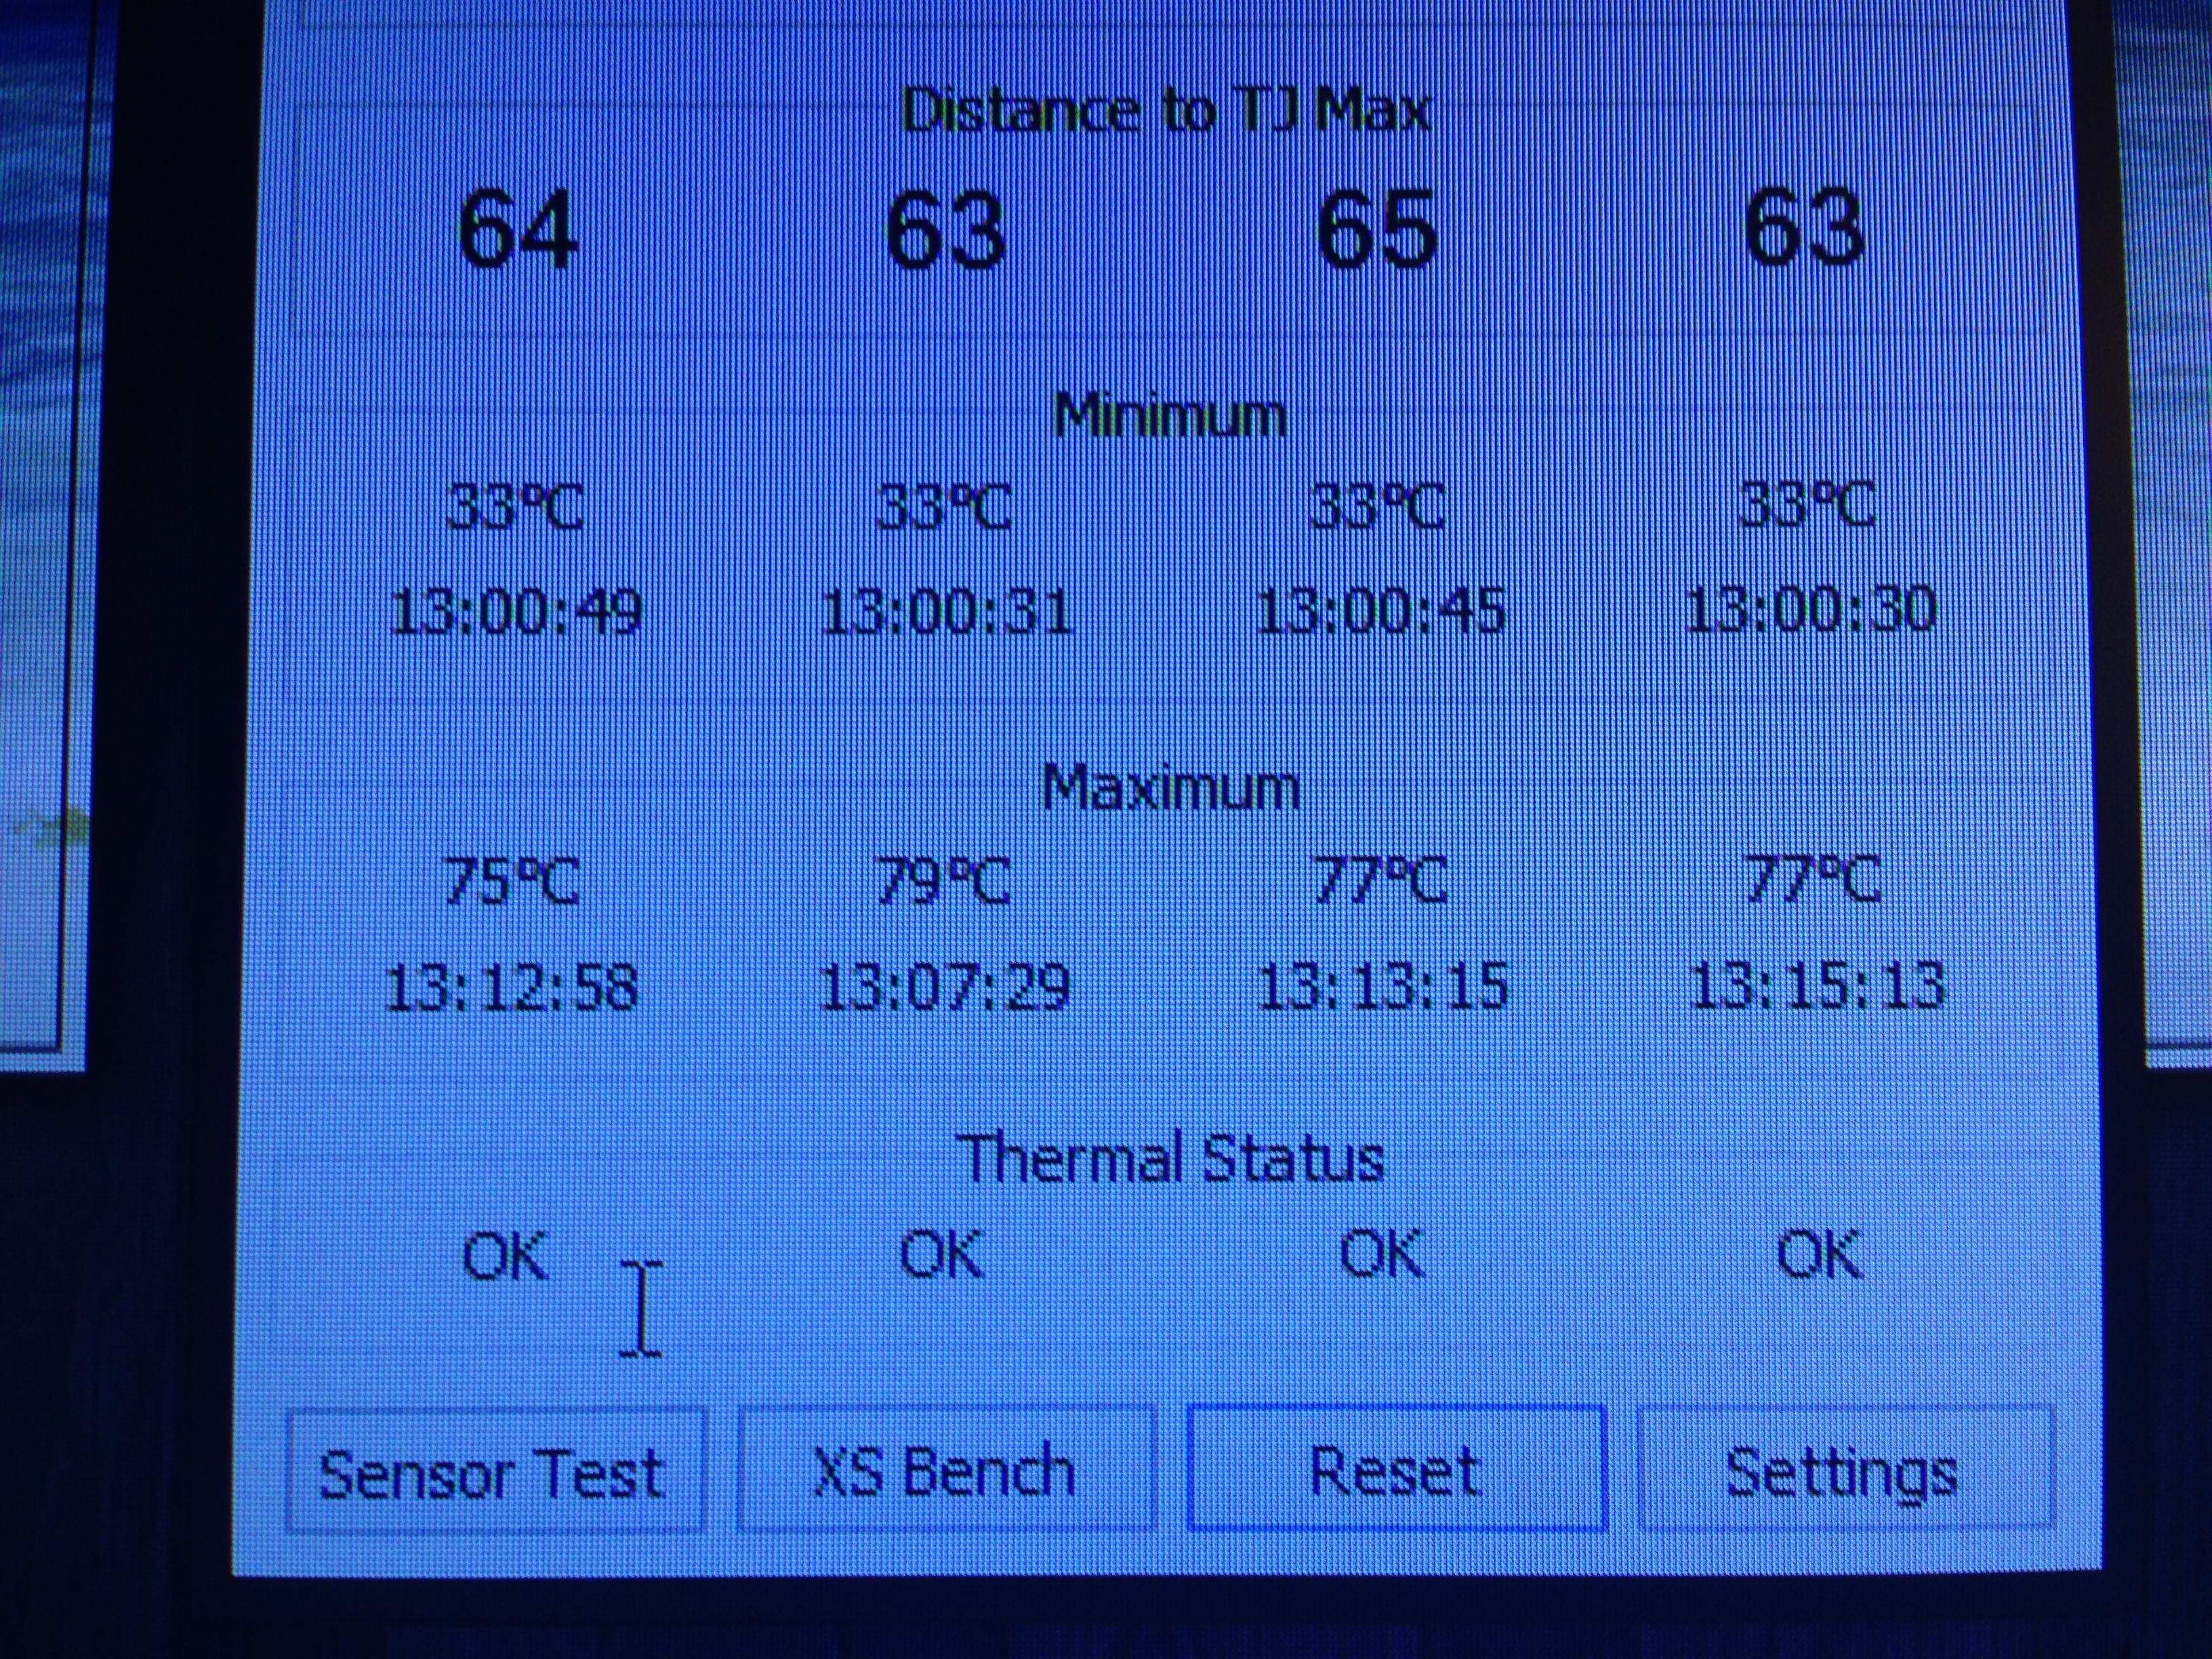 On Bios Defaults I Get These Temps After Running Prime 95 Small FFT Turbo And Speedstep Enabled C States 39GHz